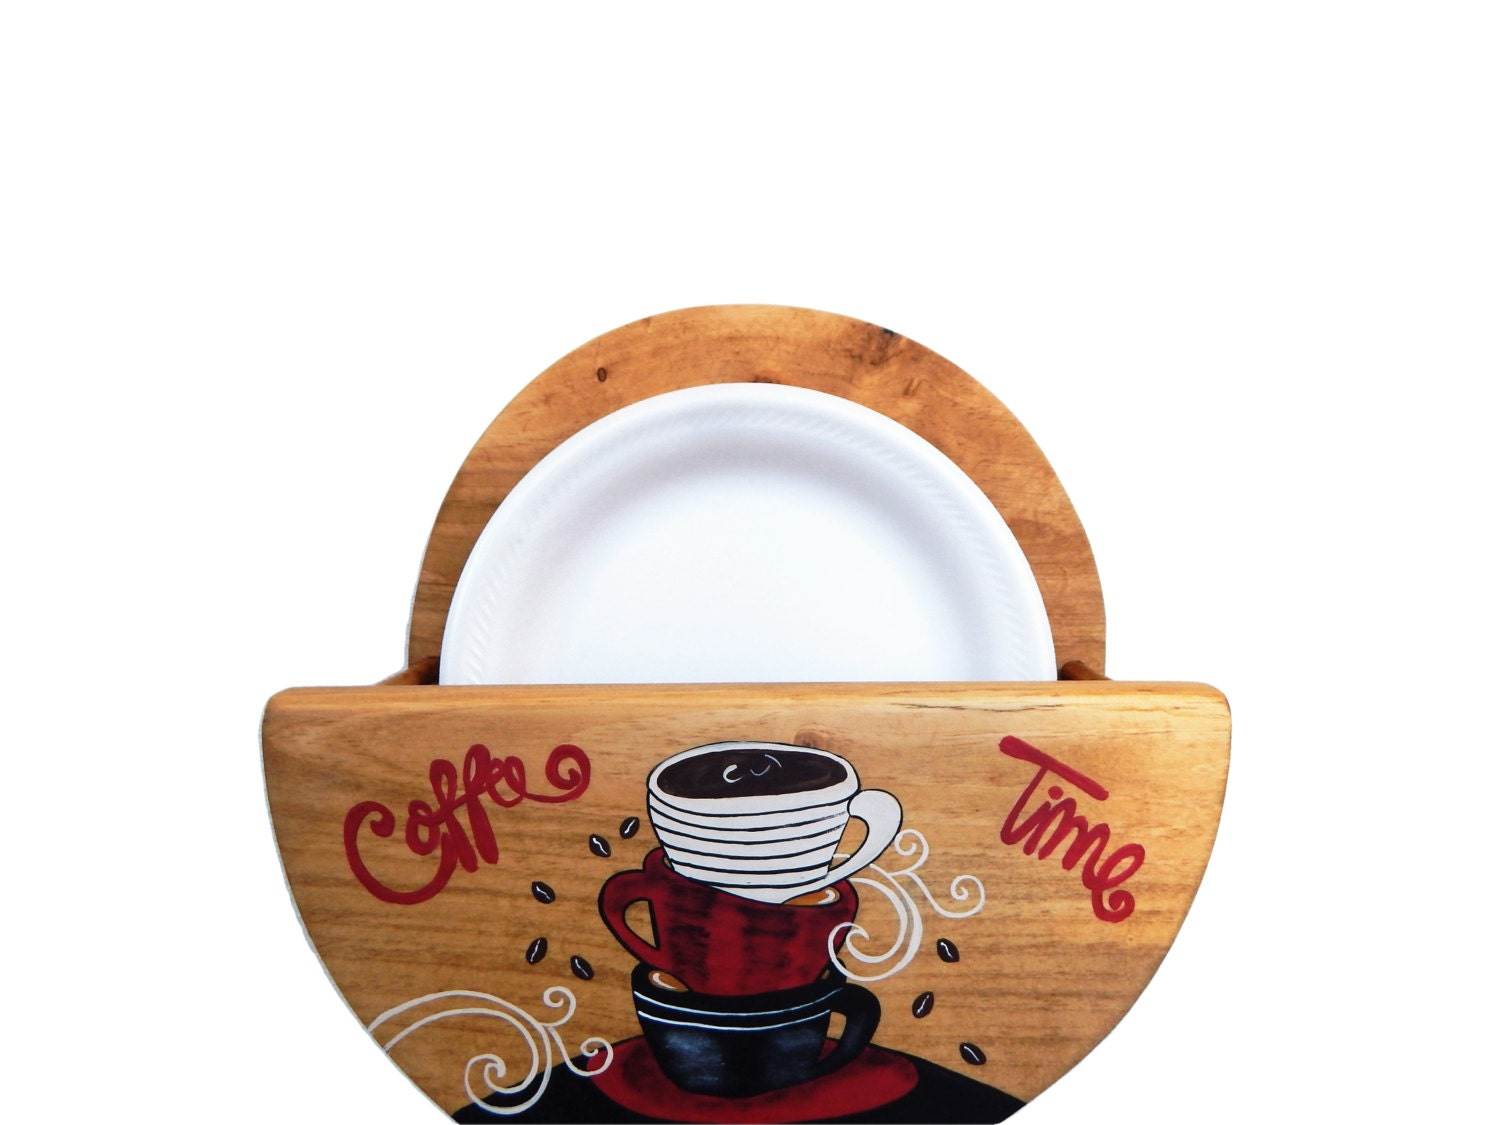 Paper Plate Holder, Wooden Plate Holder, Coffee Themed Kitchen ...